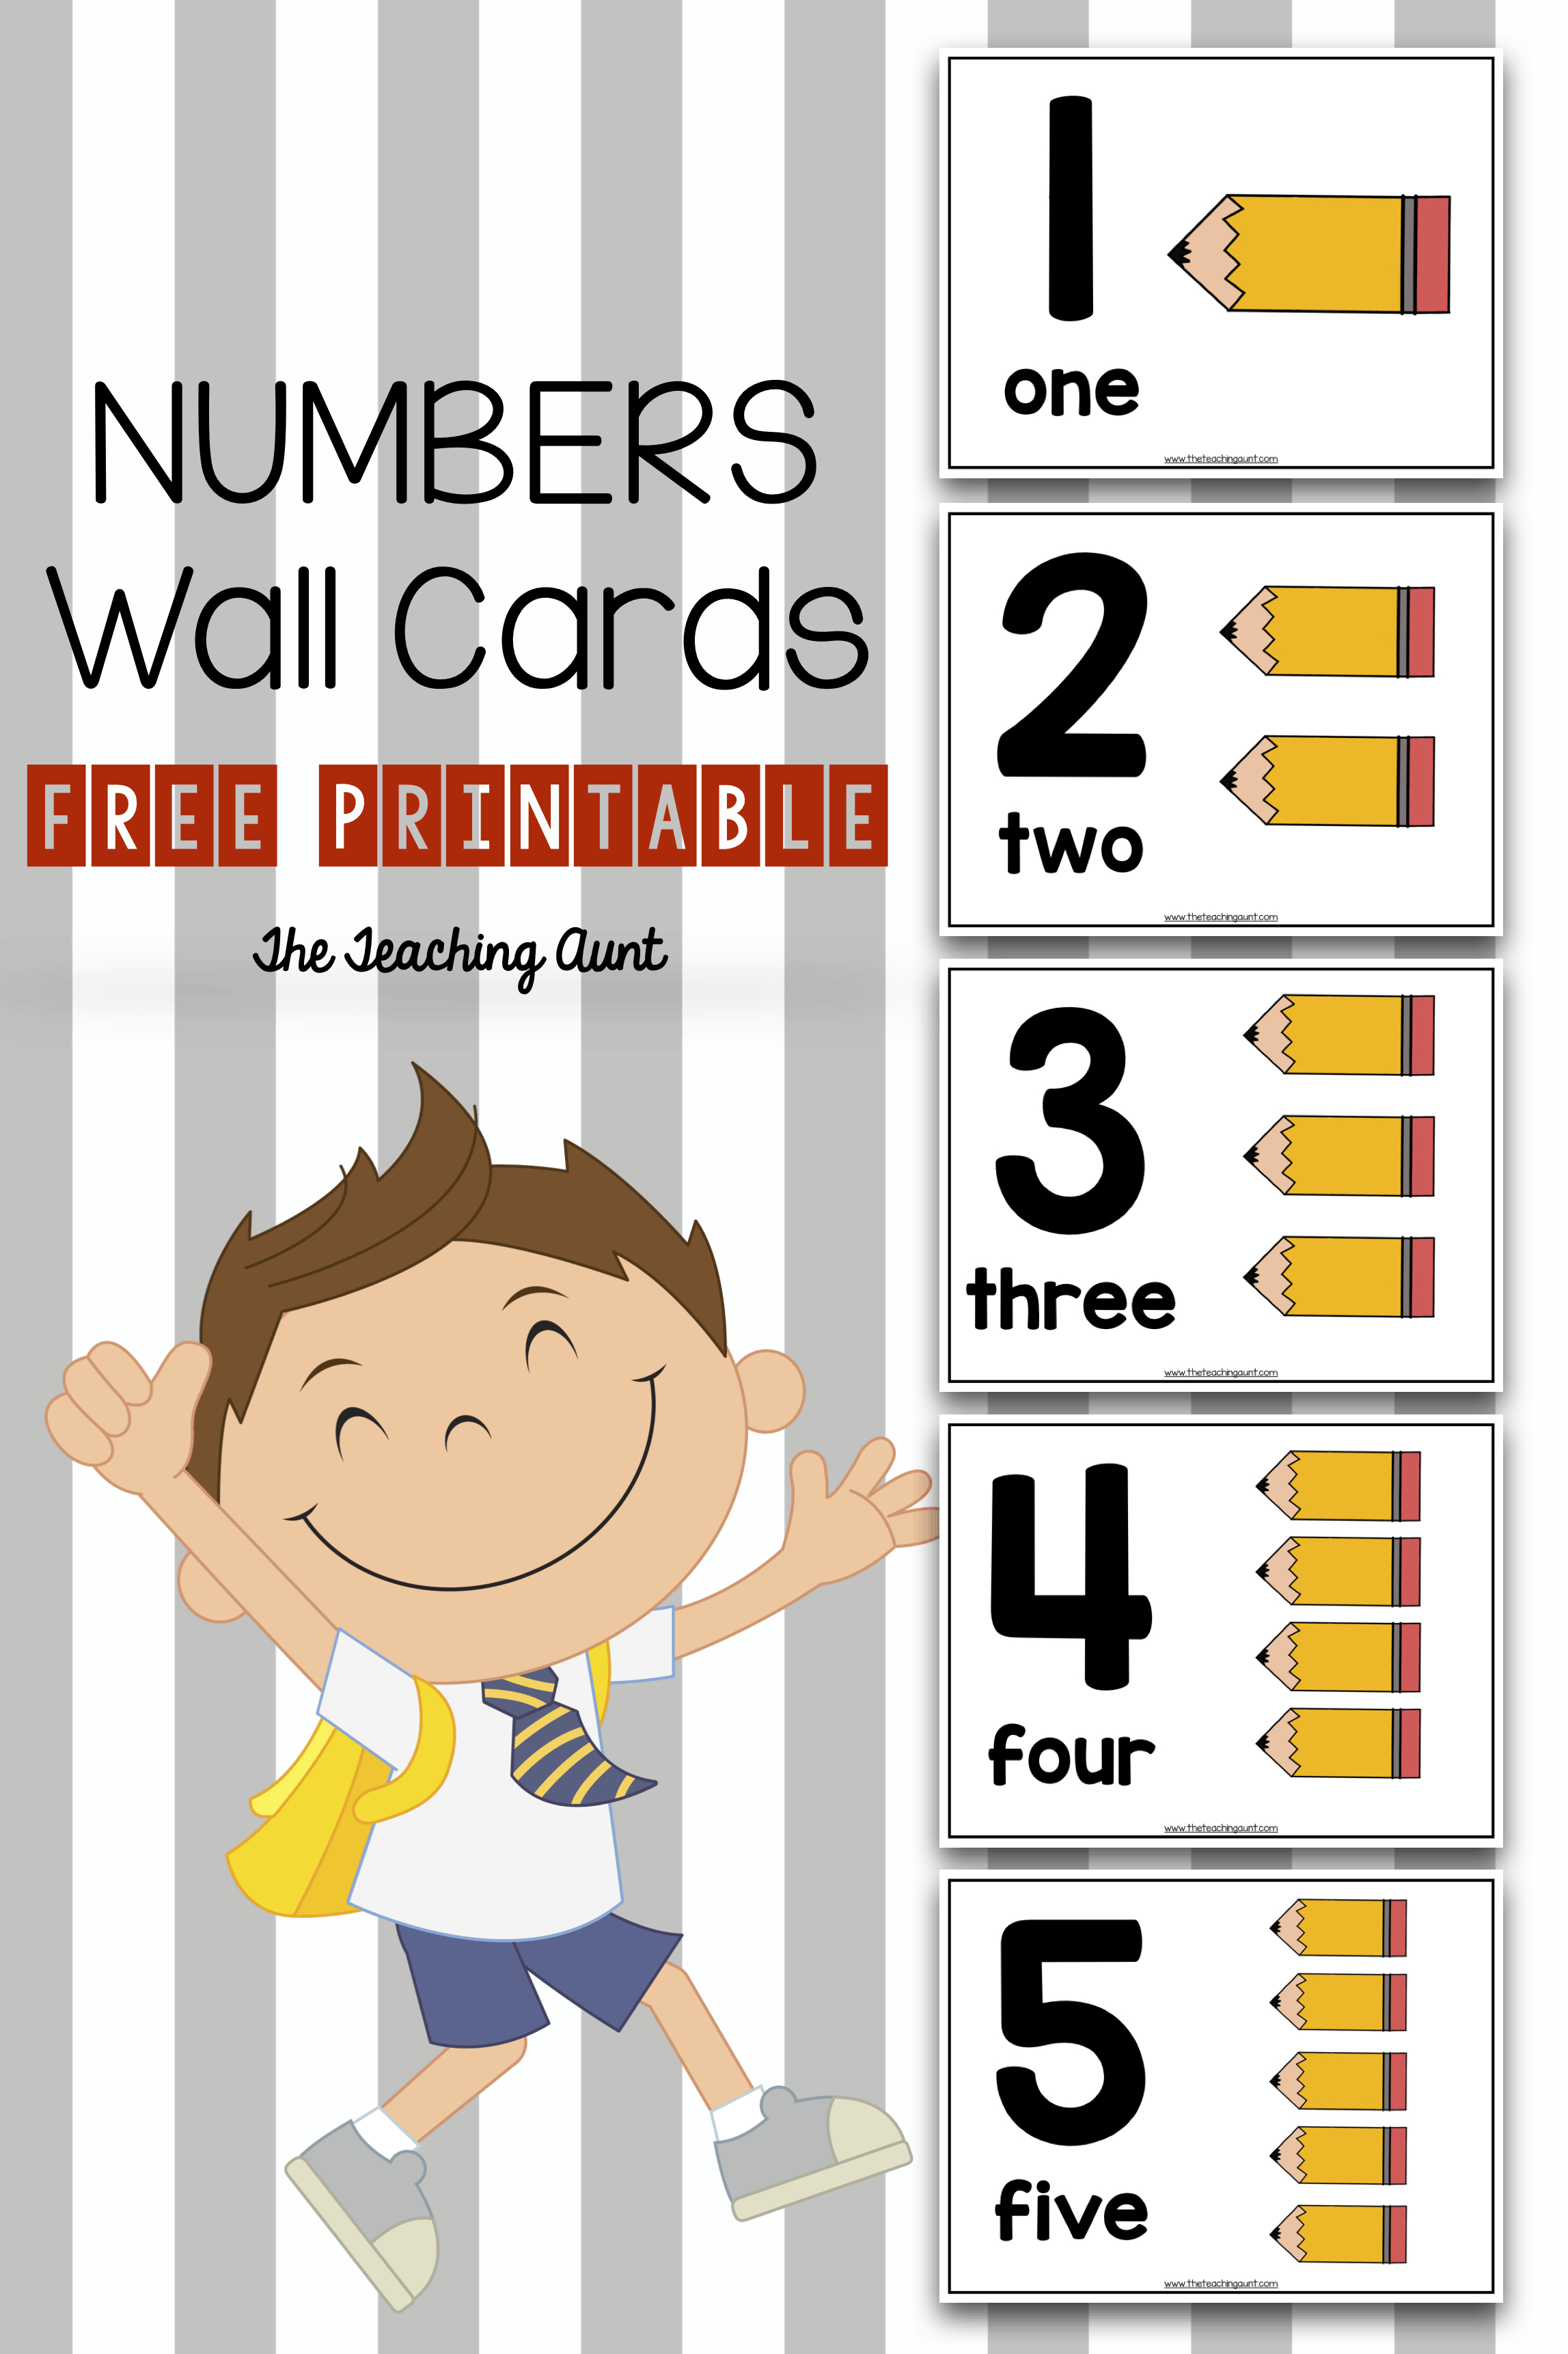 picture regarding Give Me Five Poster Printable Free named Quantity Wall Playing cards for Preschoolers - The Education Aunt